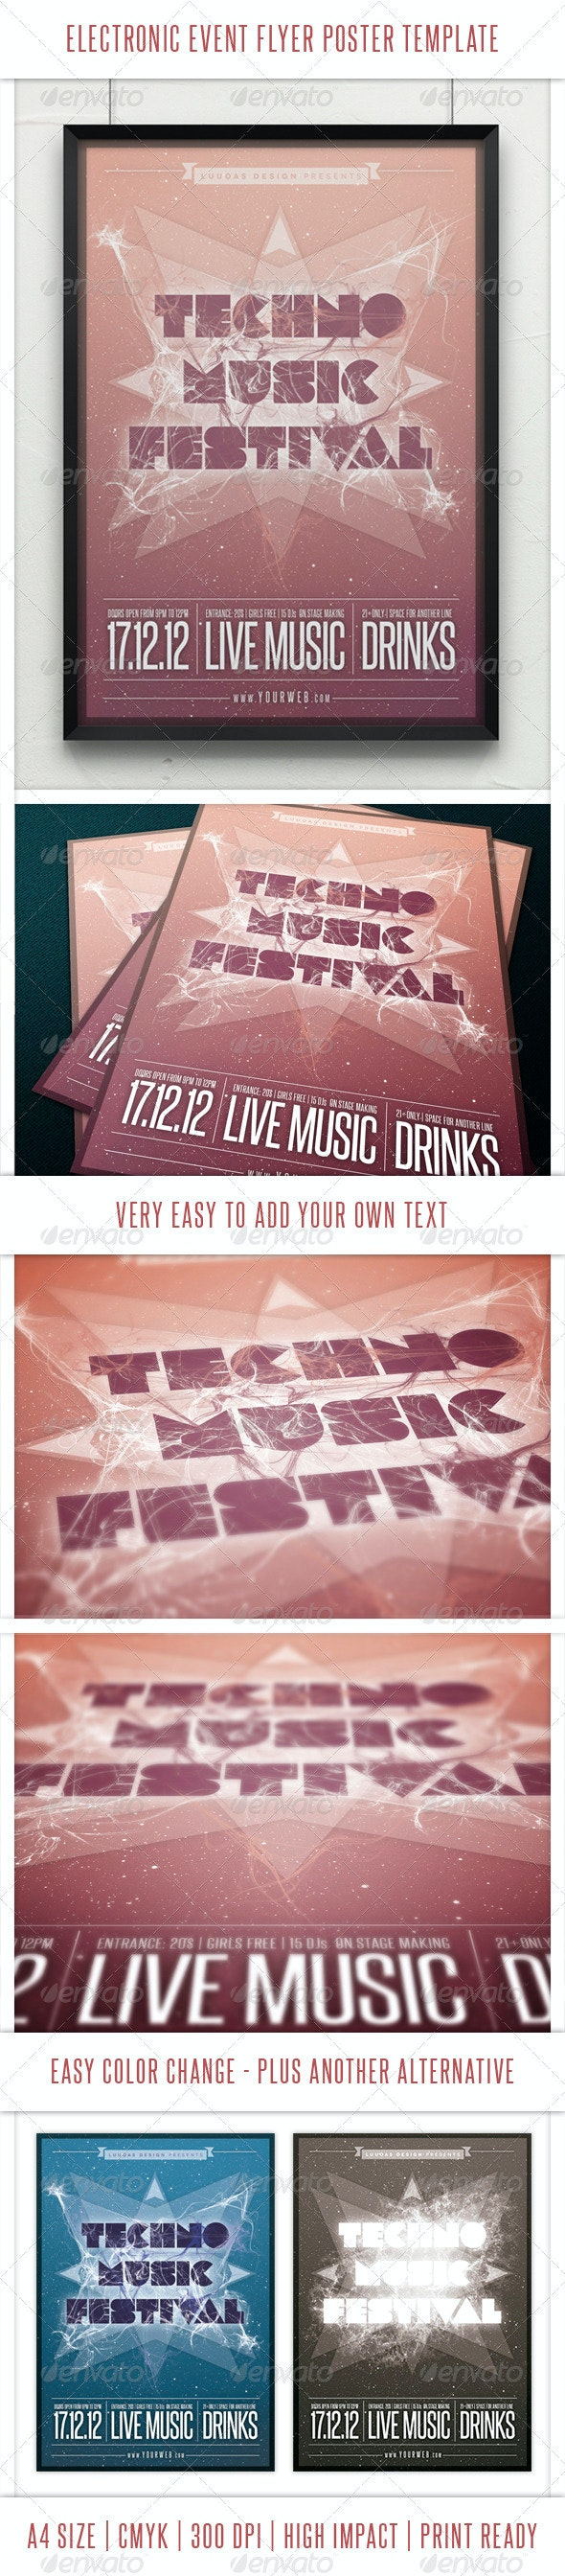 Electronic Event Flyer Poster Template - Events Flyers